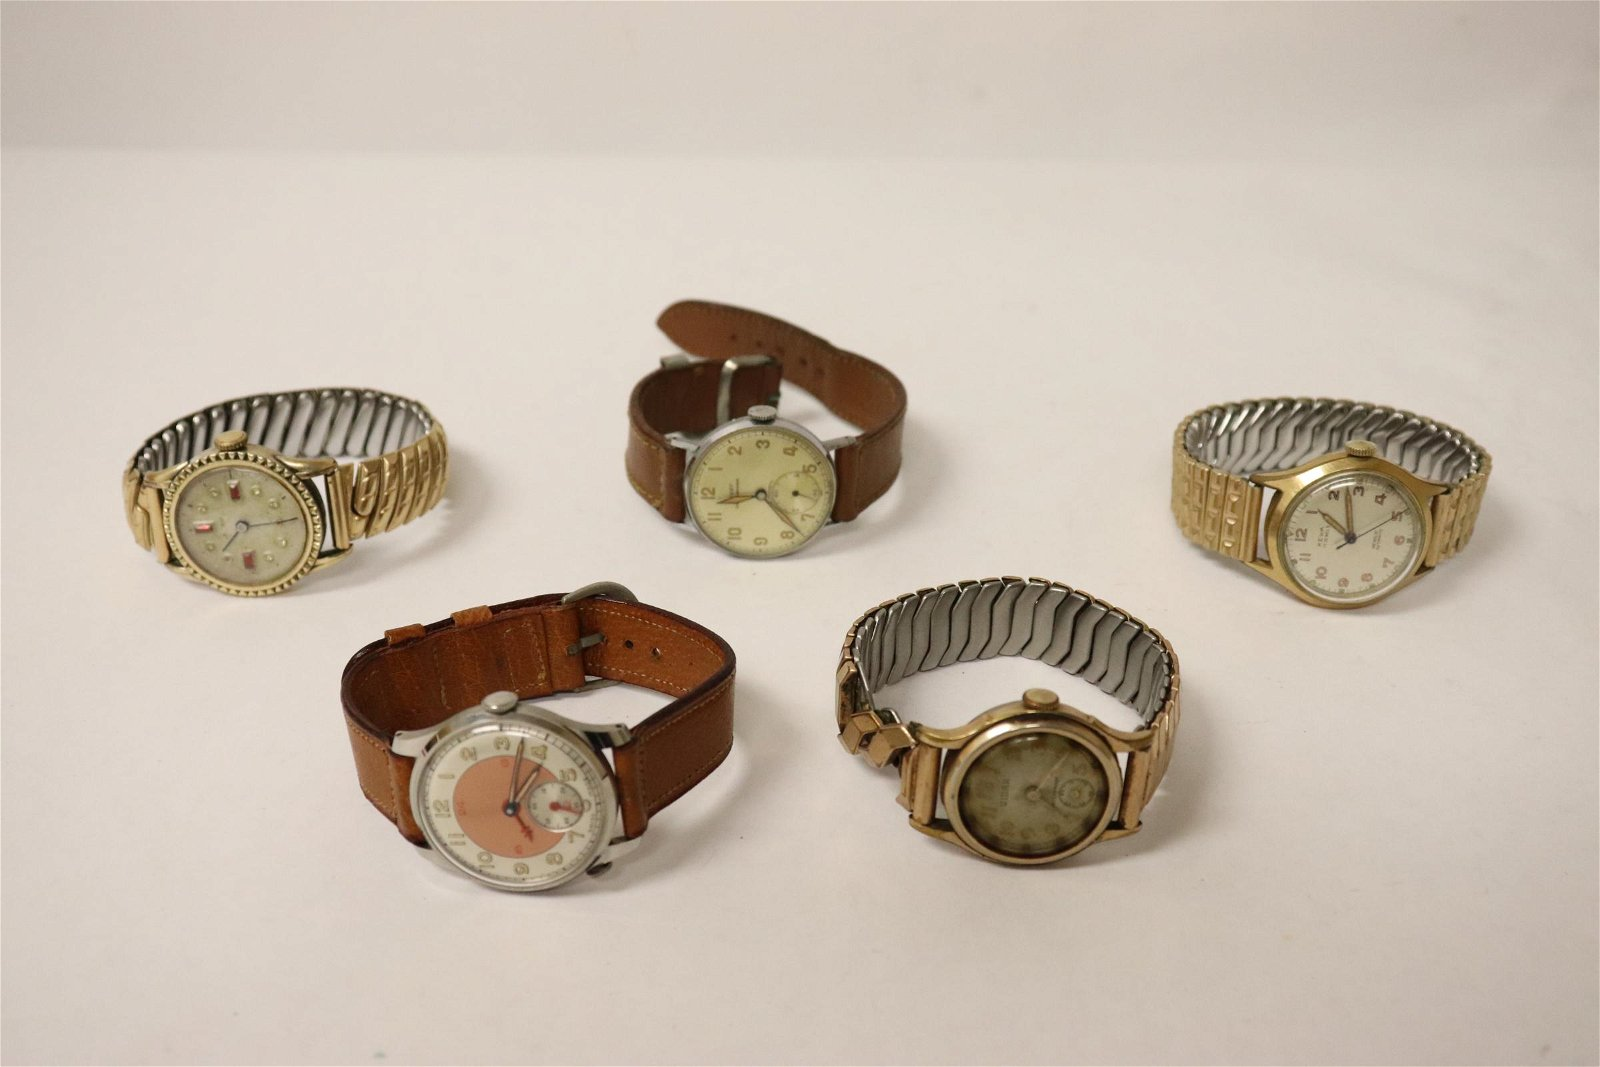 5 vintage watches, possible WWII